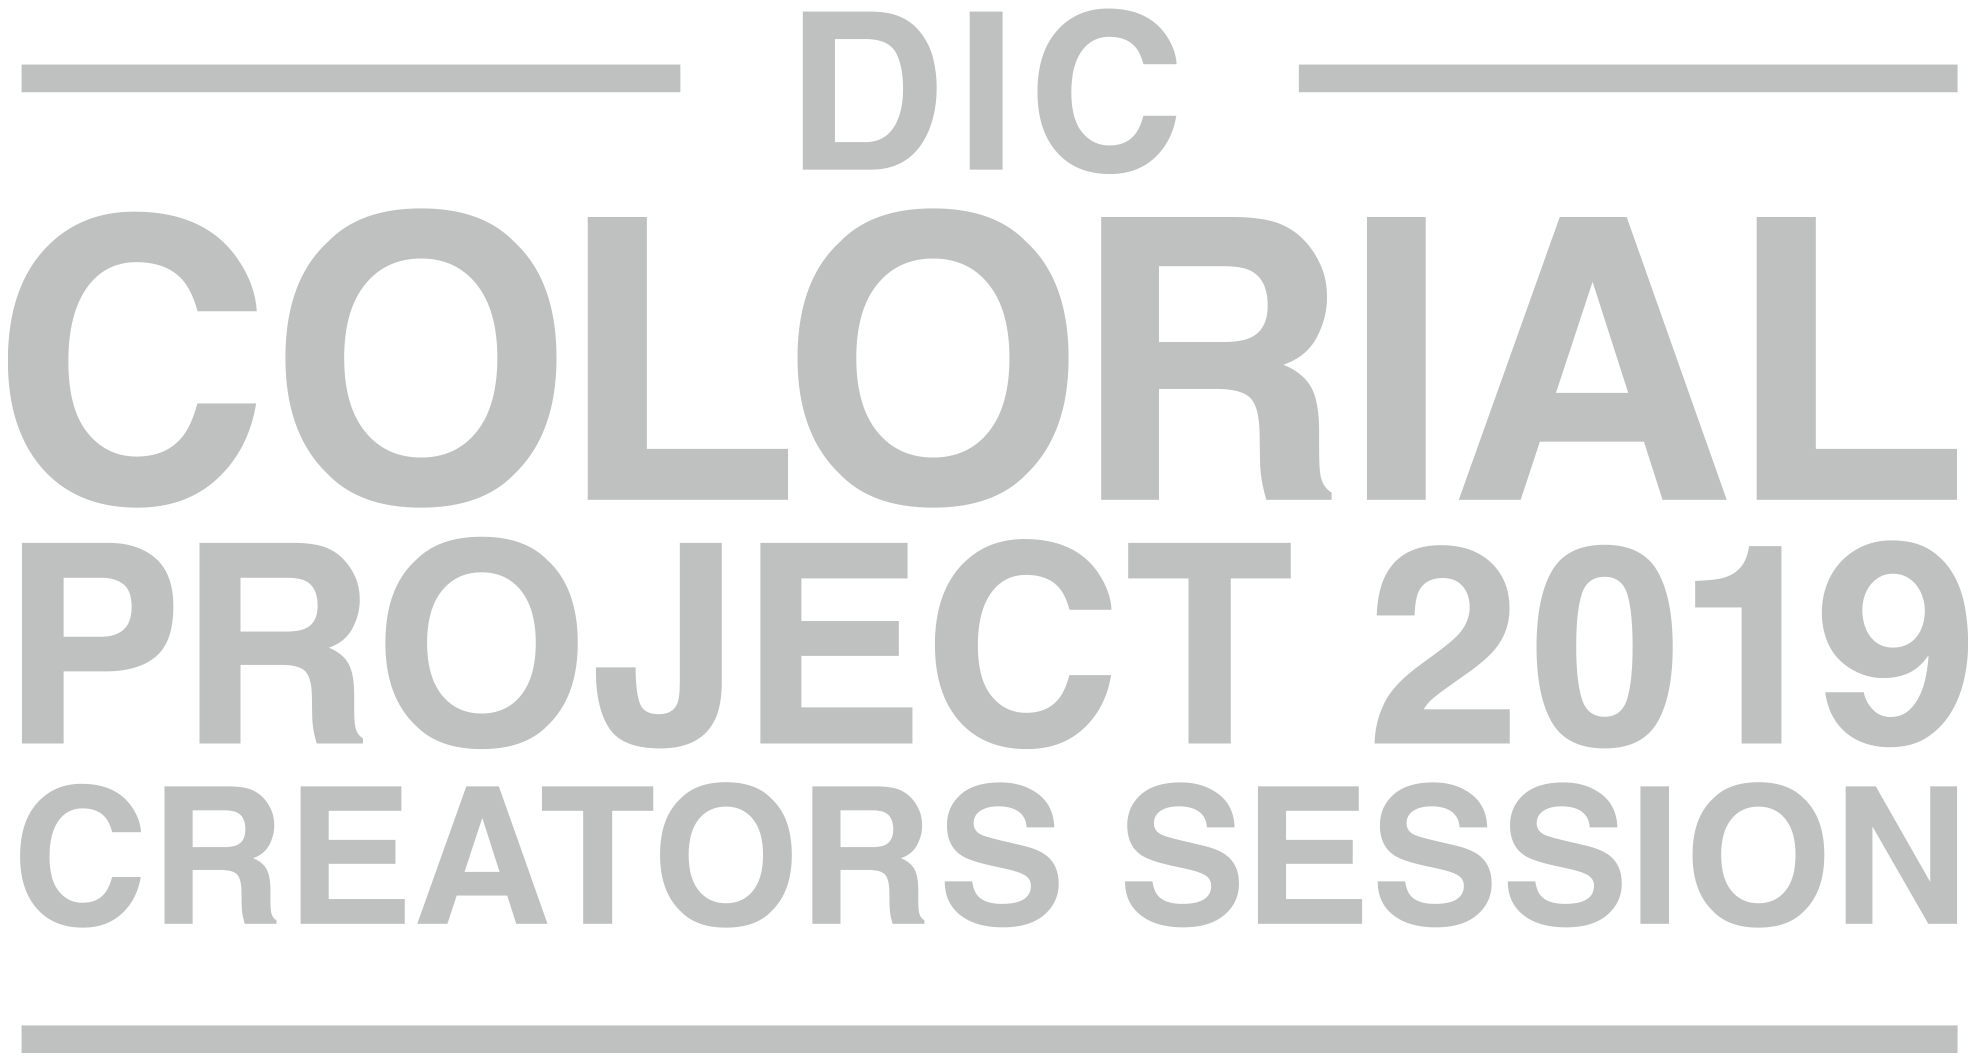 DIC COLORIAL PROJECT 2019 CREATORS SESSION